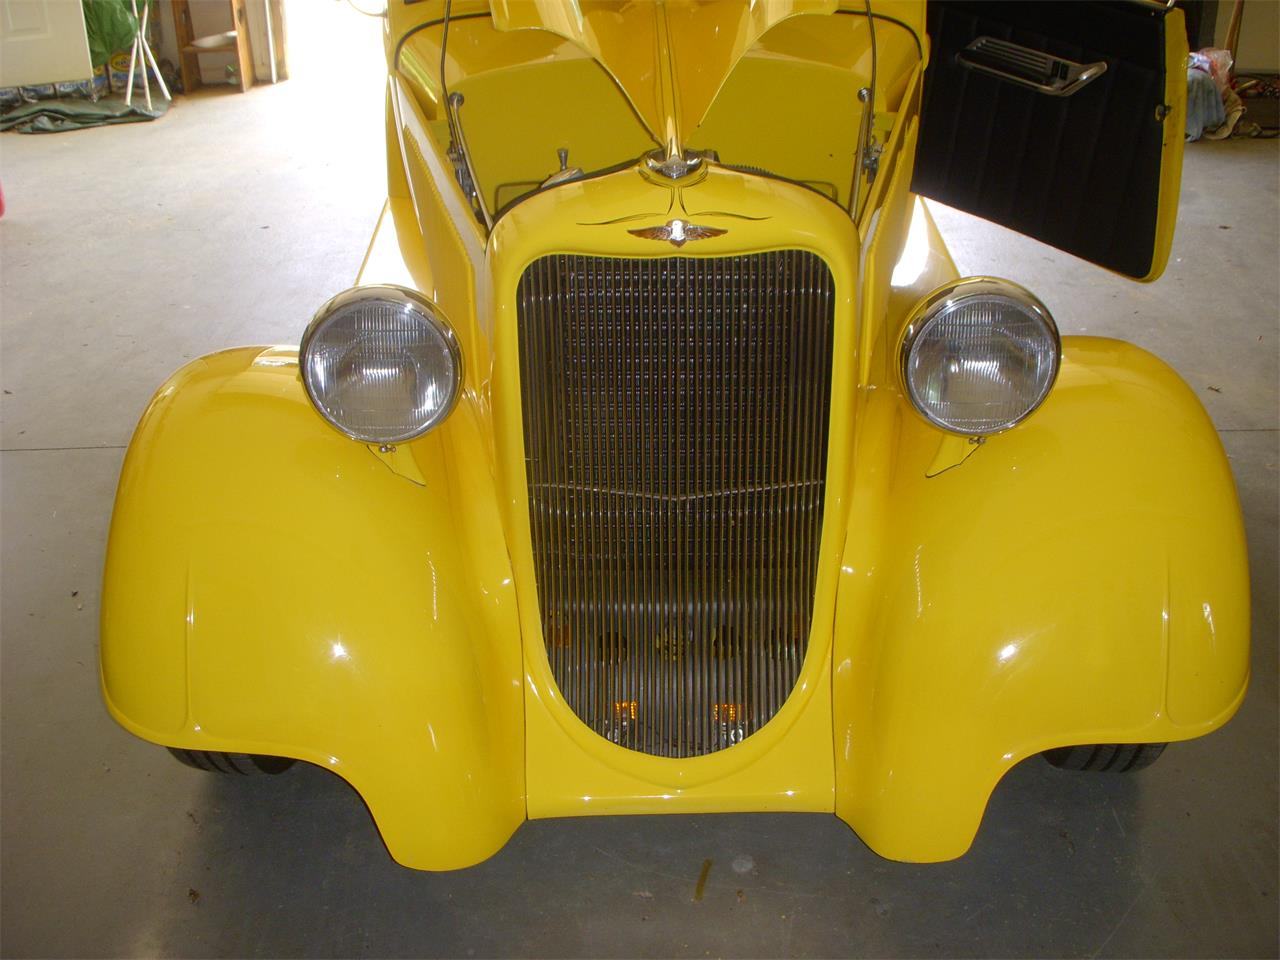 Large Picture of Classic '33 Dodge Cabriolet - $55,000.00 Offered by a Private Seller - HZA7